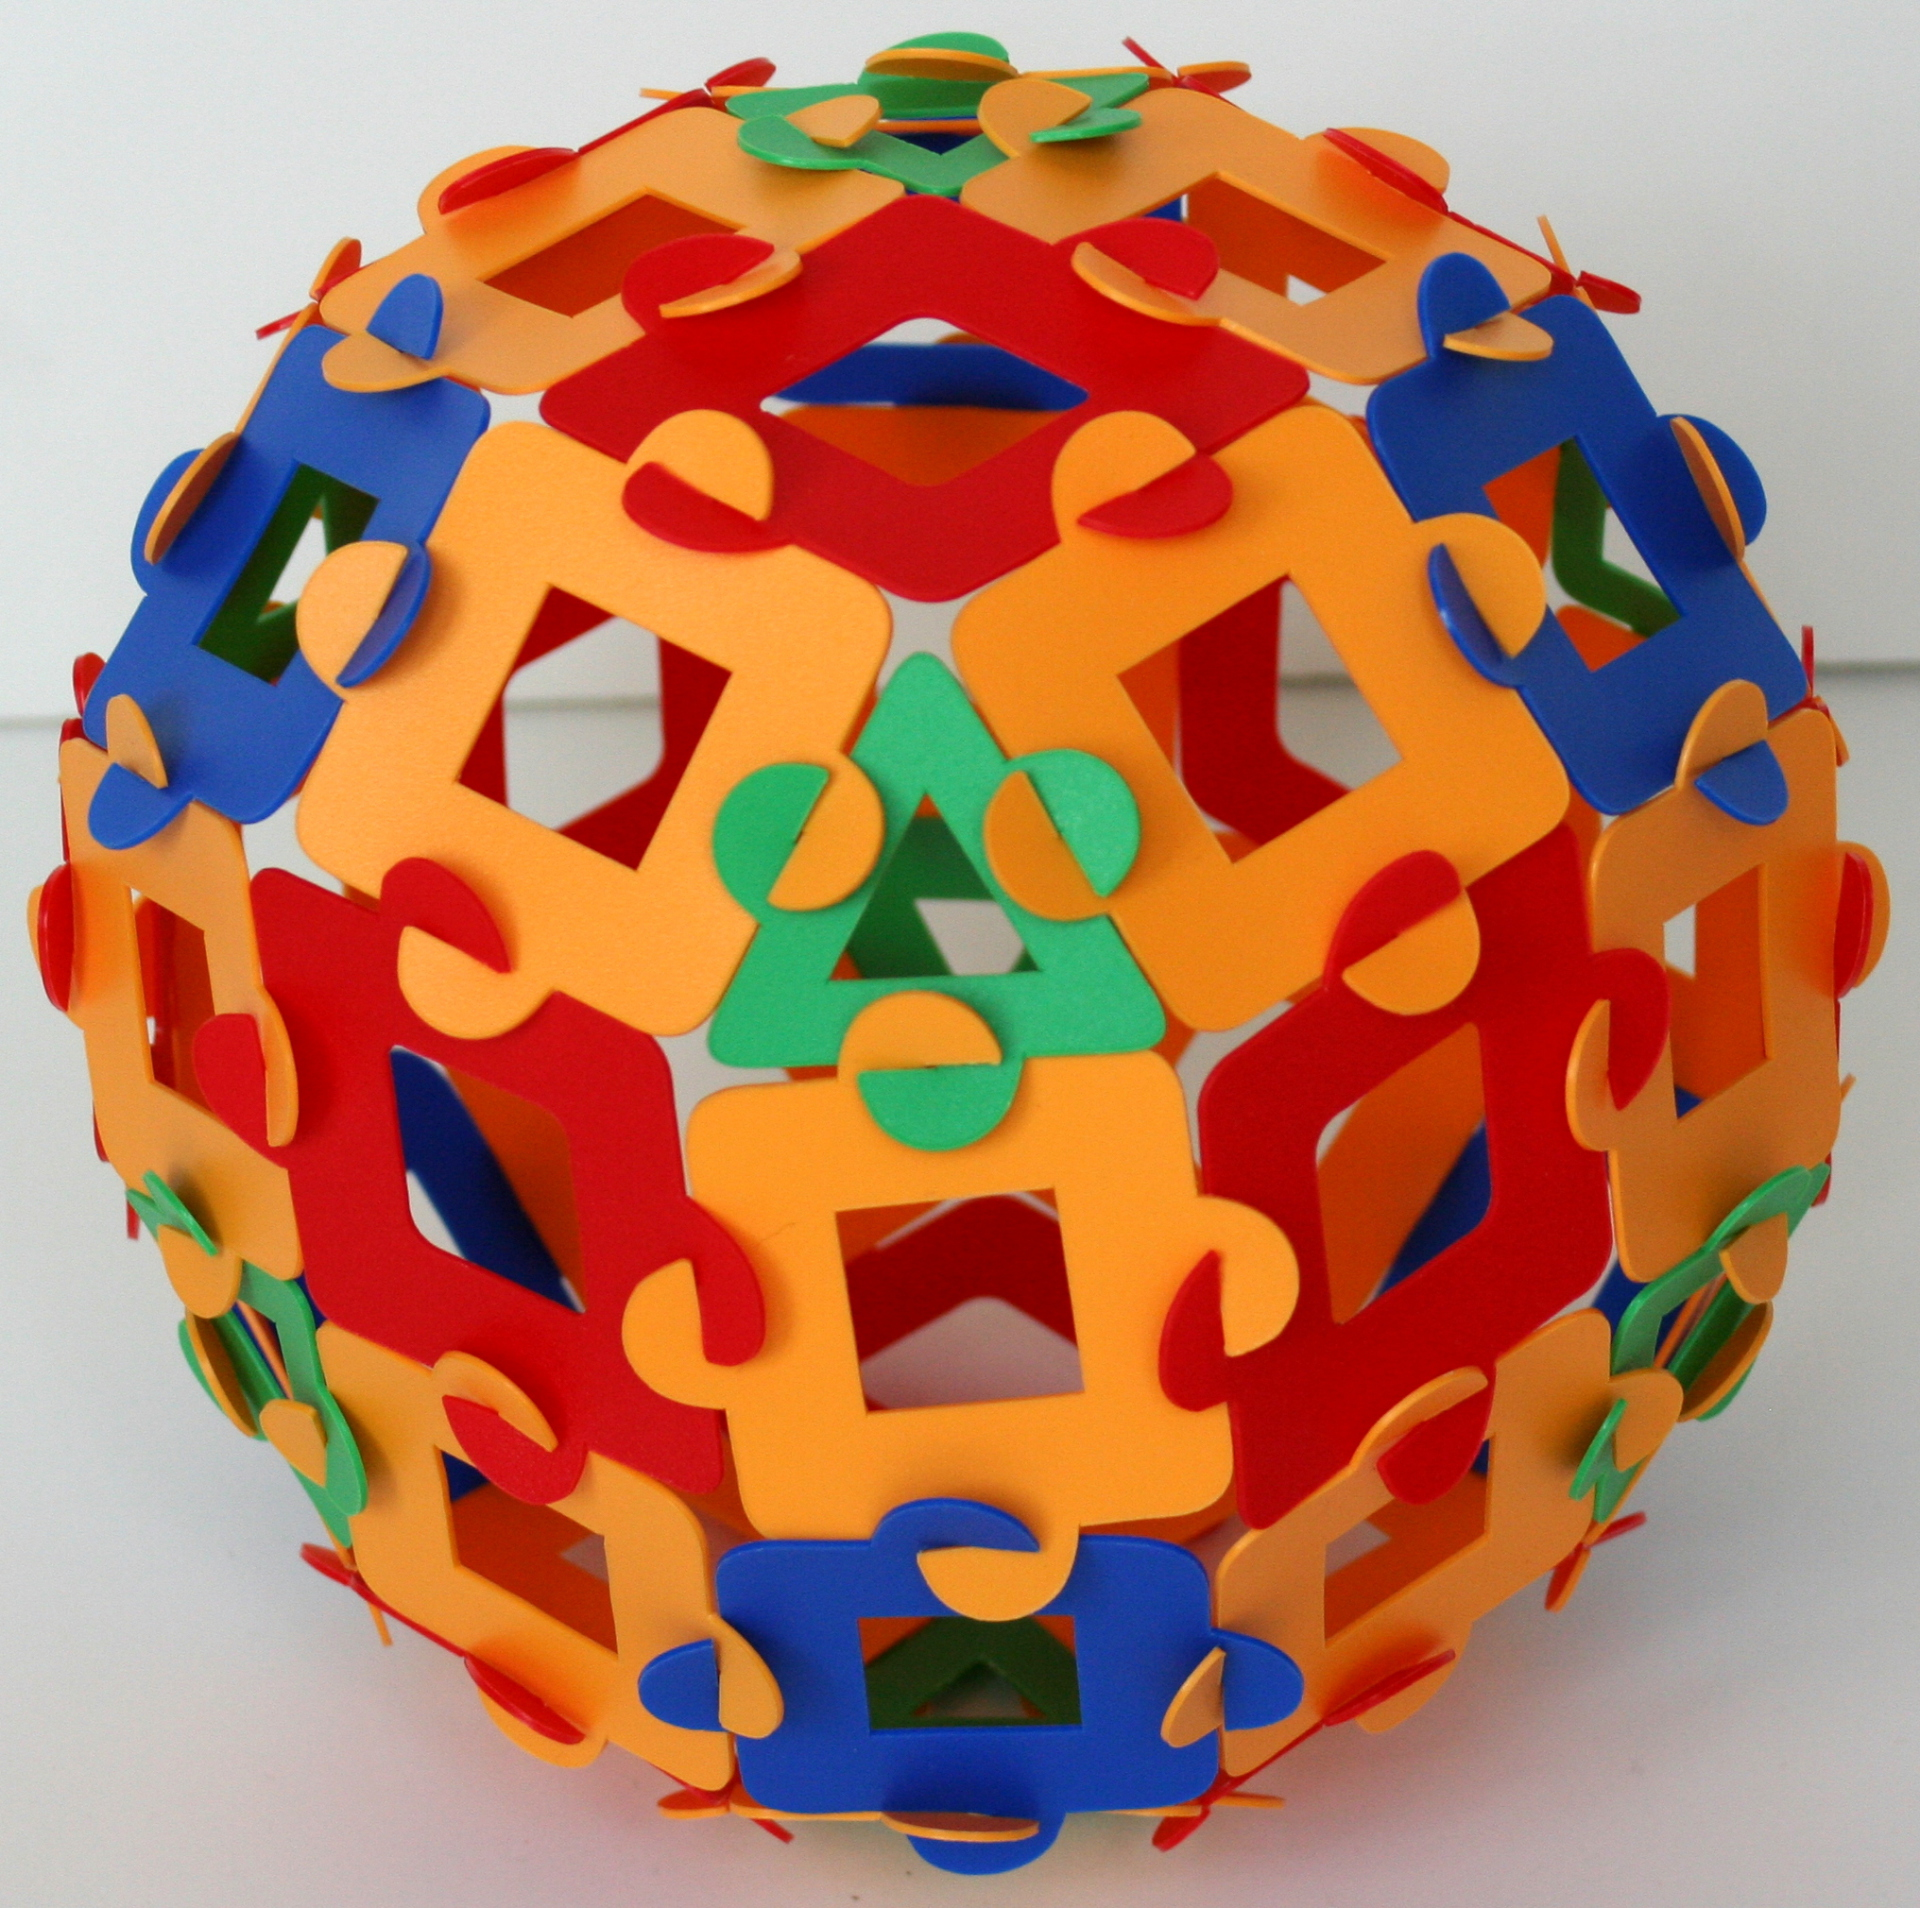 Expanded rhombic dodecahedron